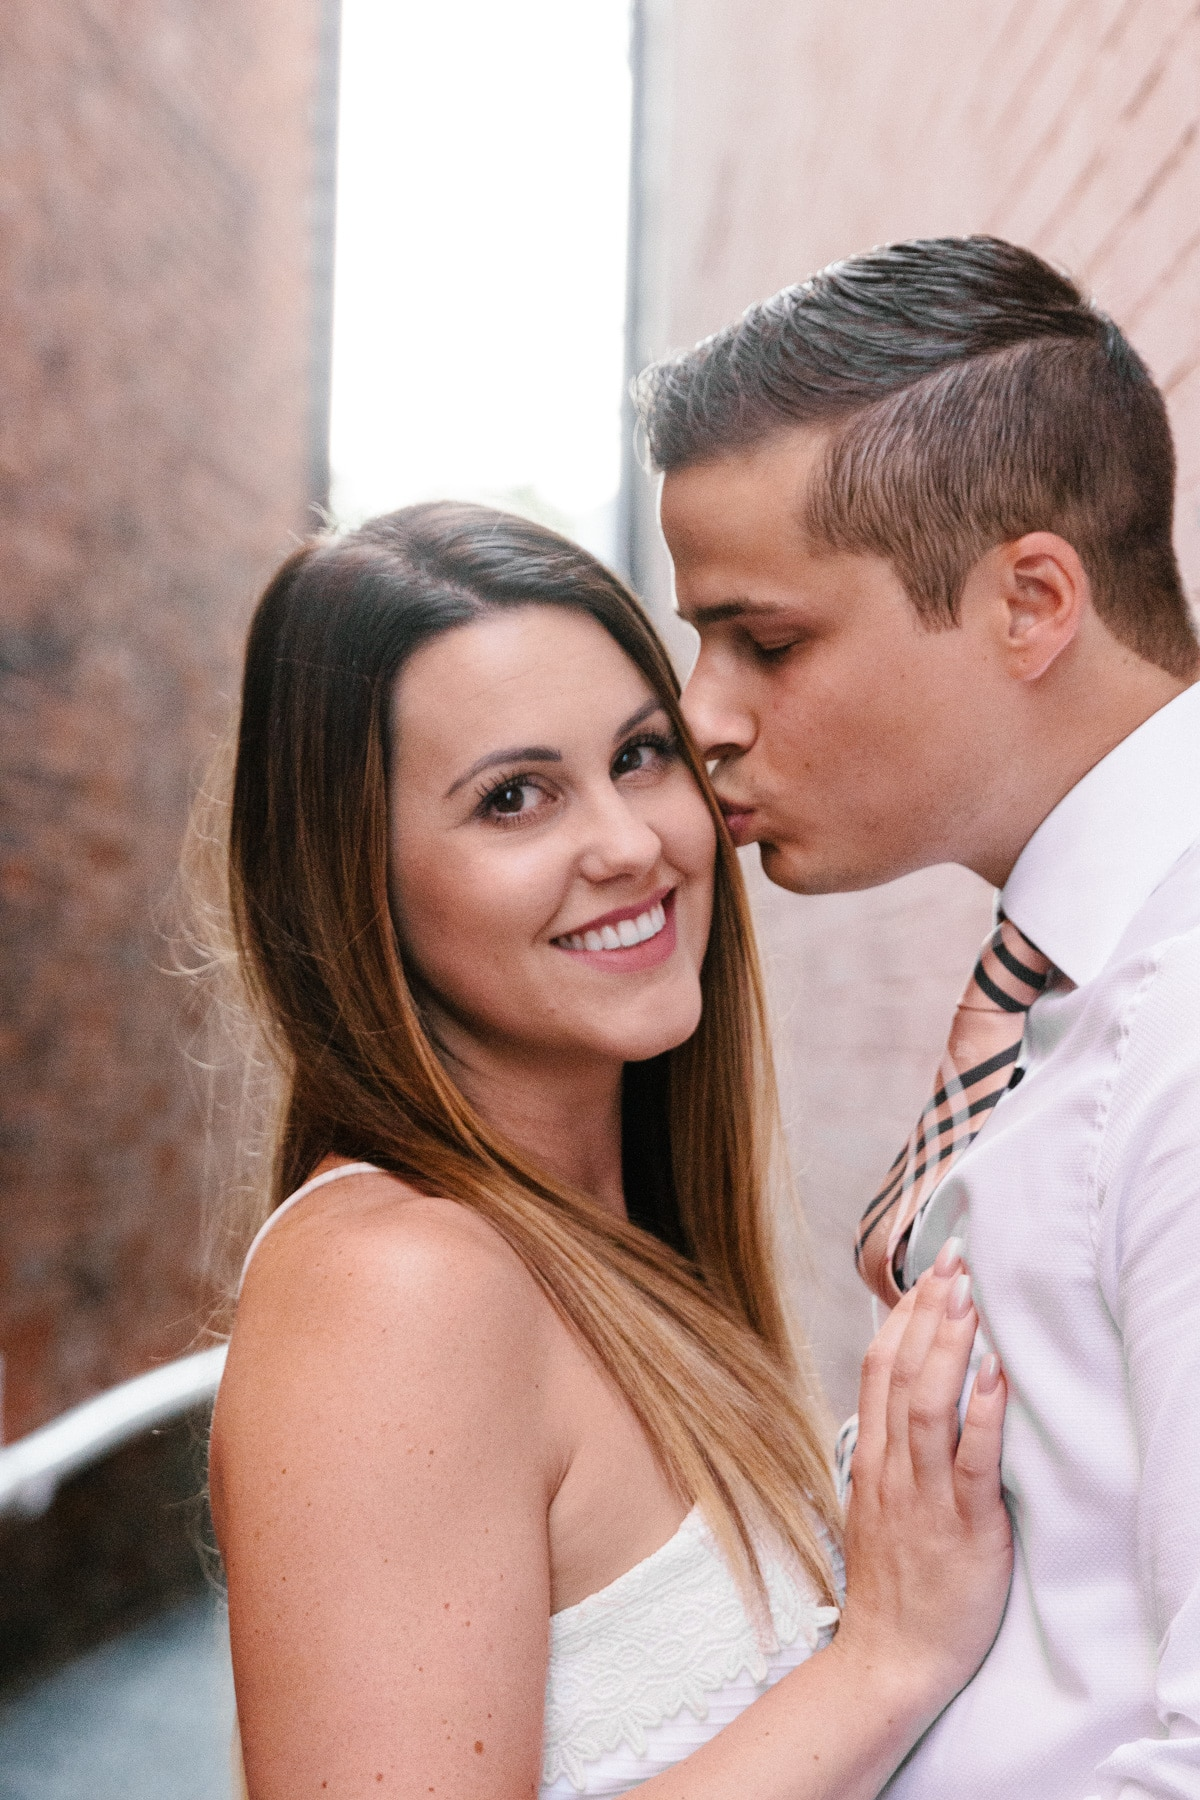 Engagement session in columbus ohio! These engagement pictures capture this couple perfectly. Check out the engagement poses and portrait golden hour photography.